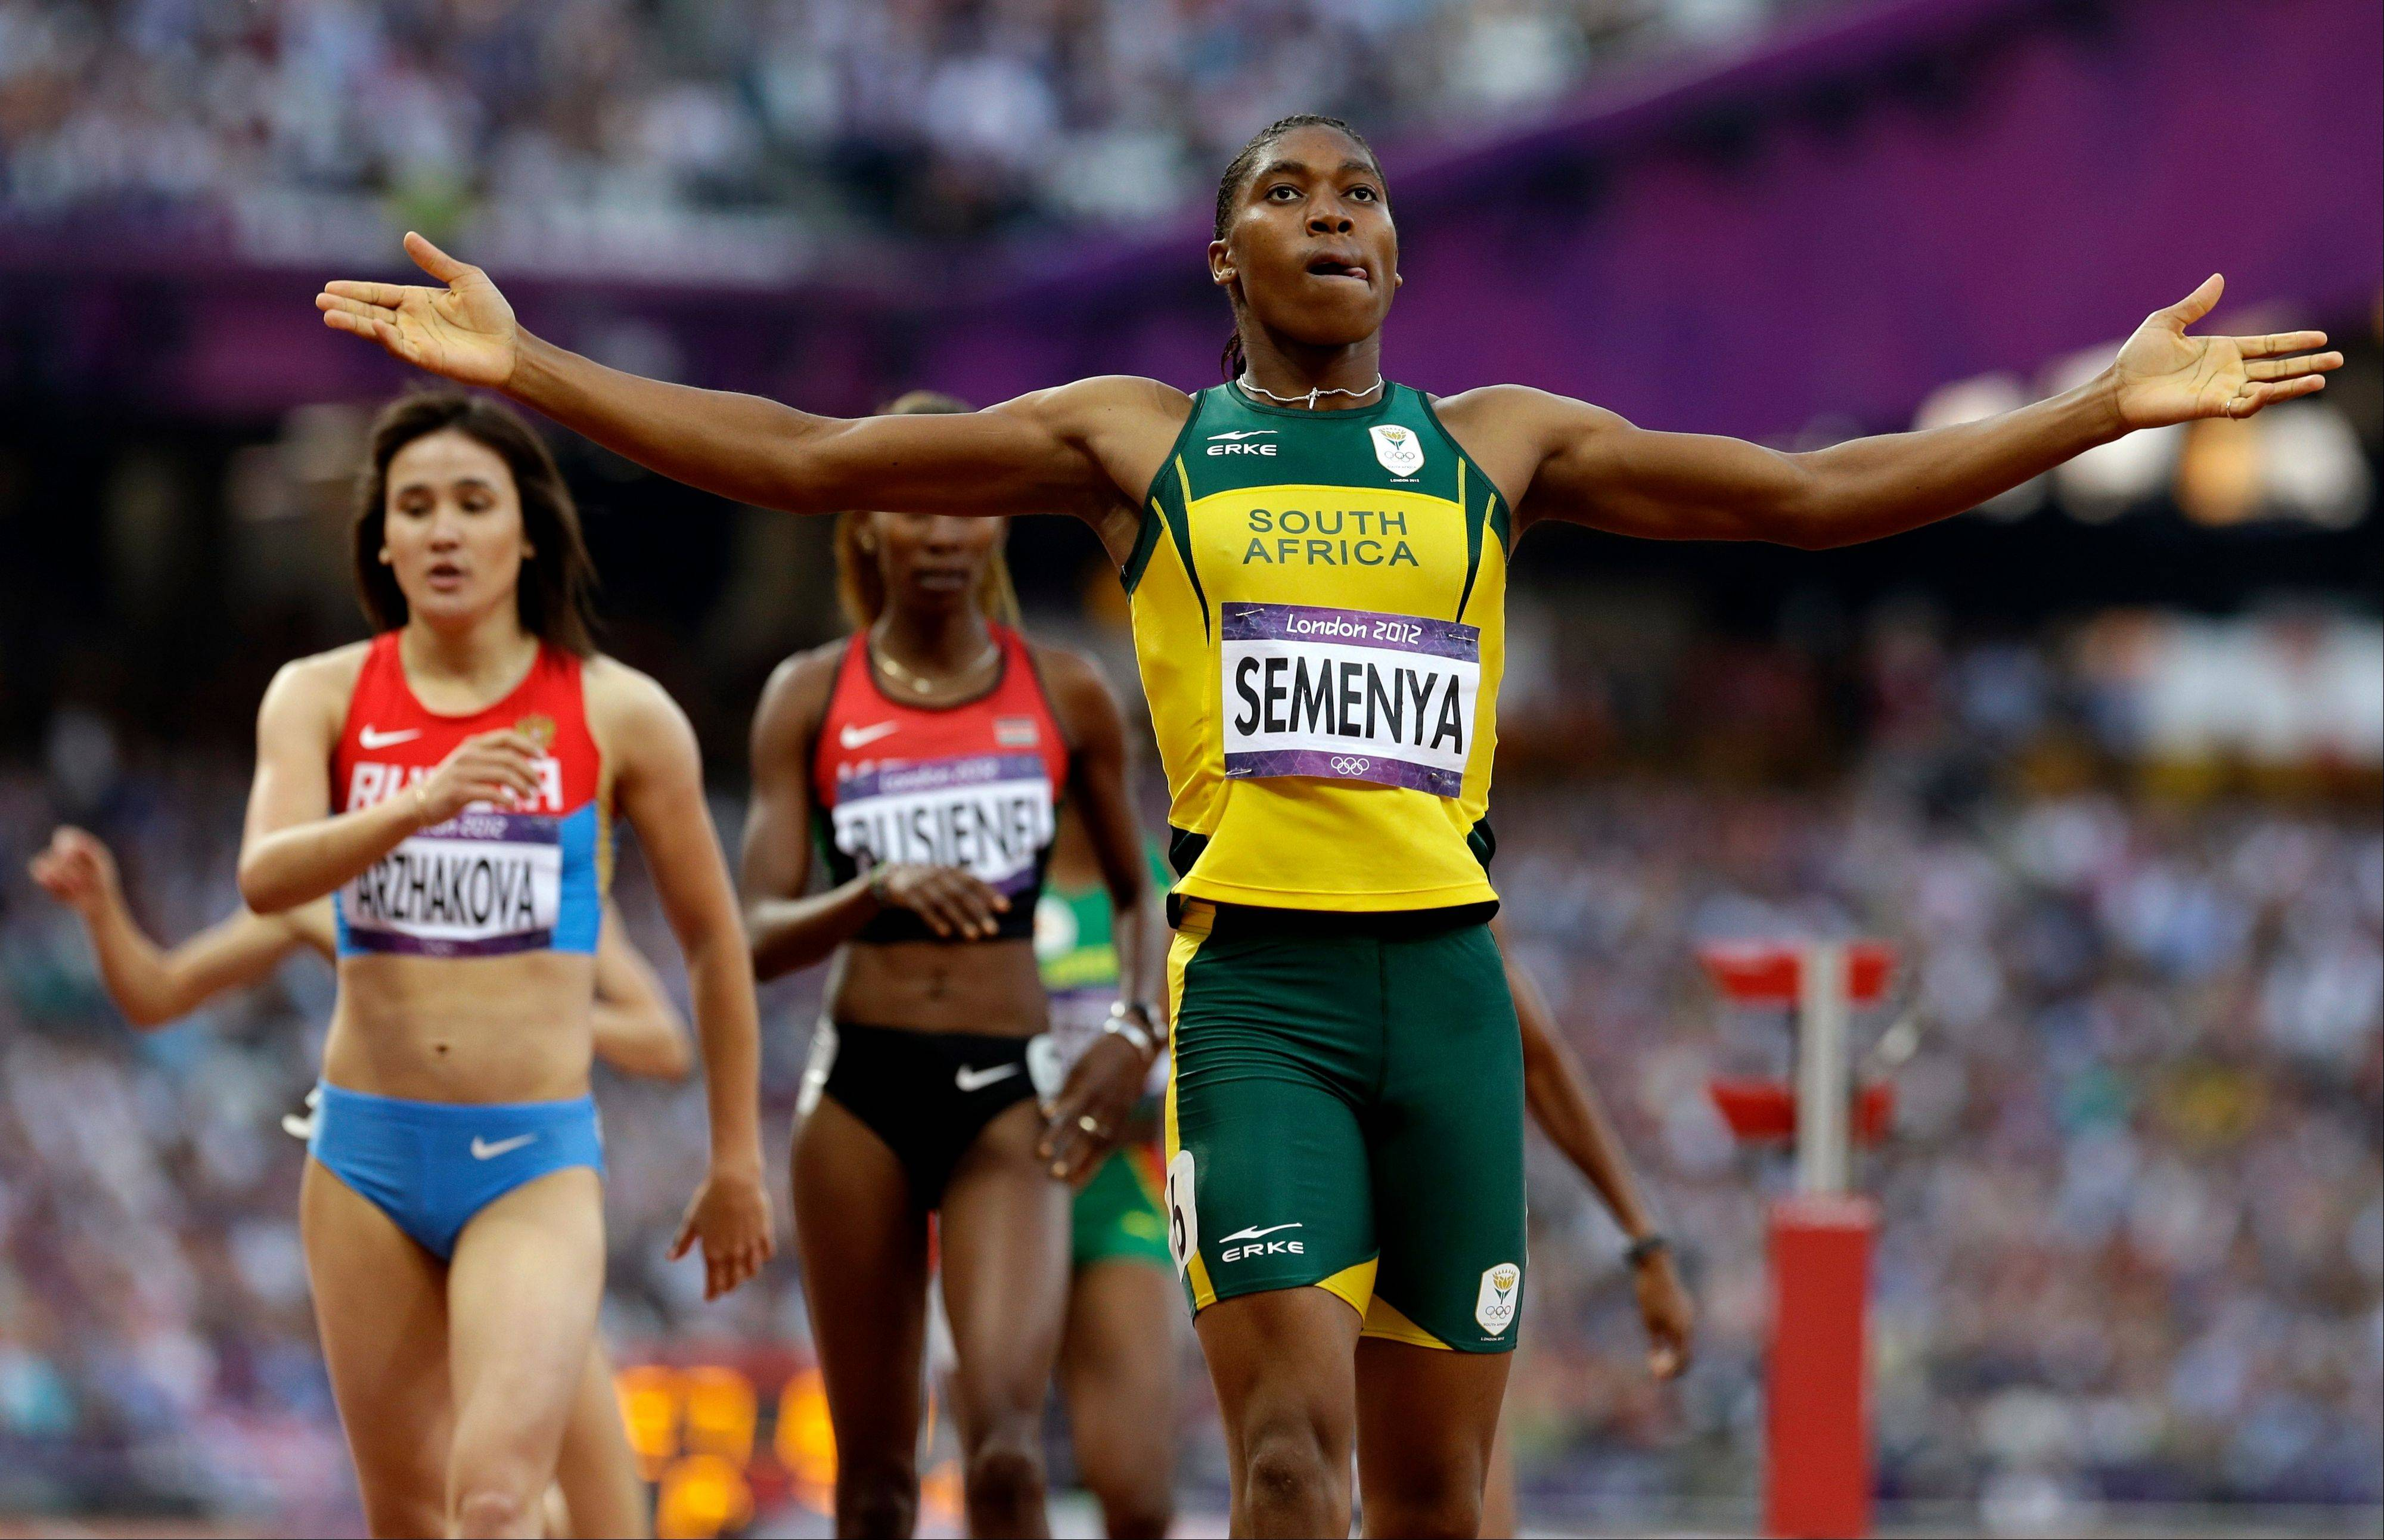 Semenya advances to 800-meter final at Olympics